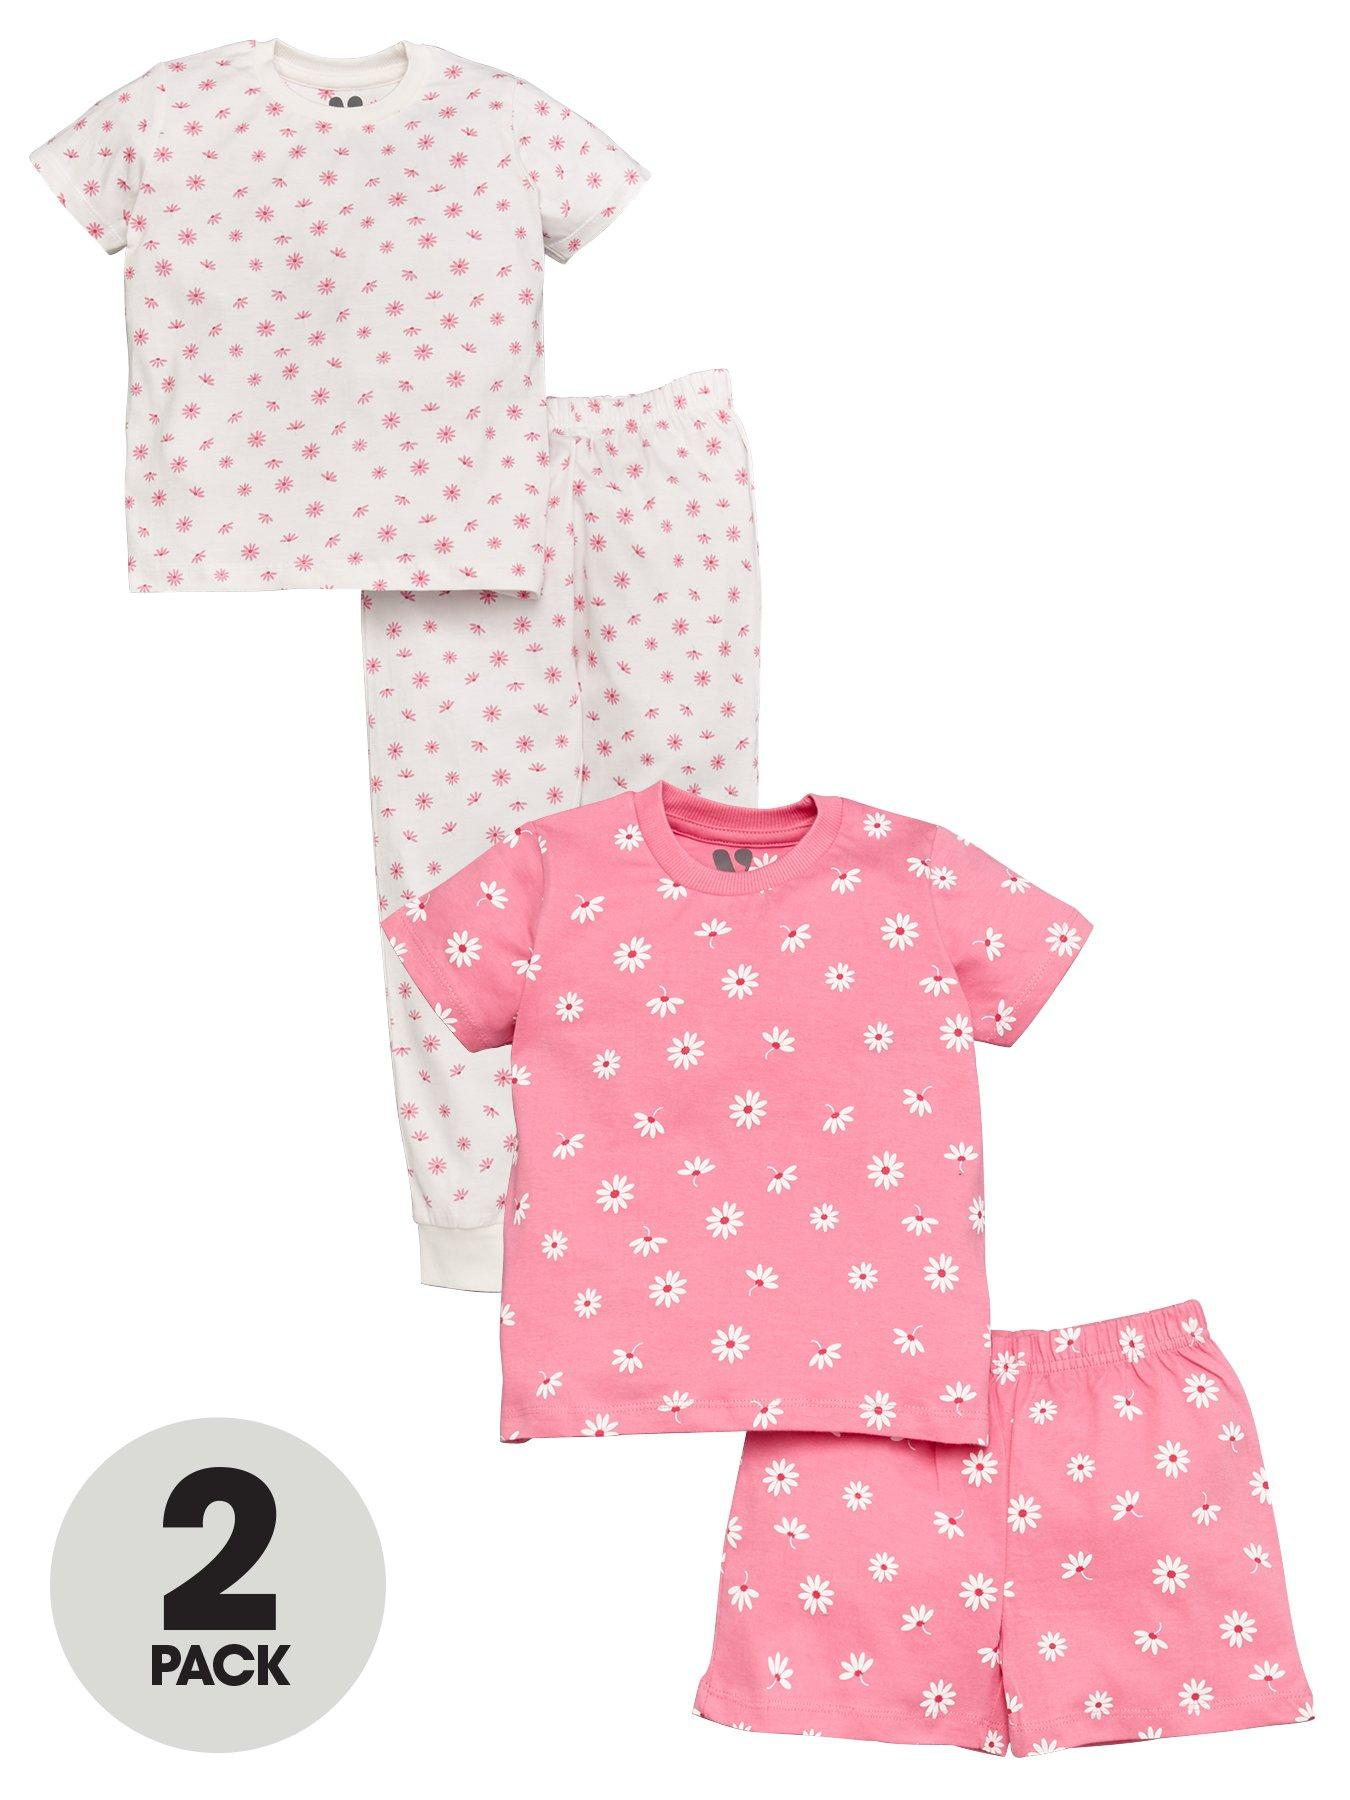 BNWT Girls Pink /& Yellow Patterned 2 Pack Dresses Age 4-5 Years